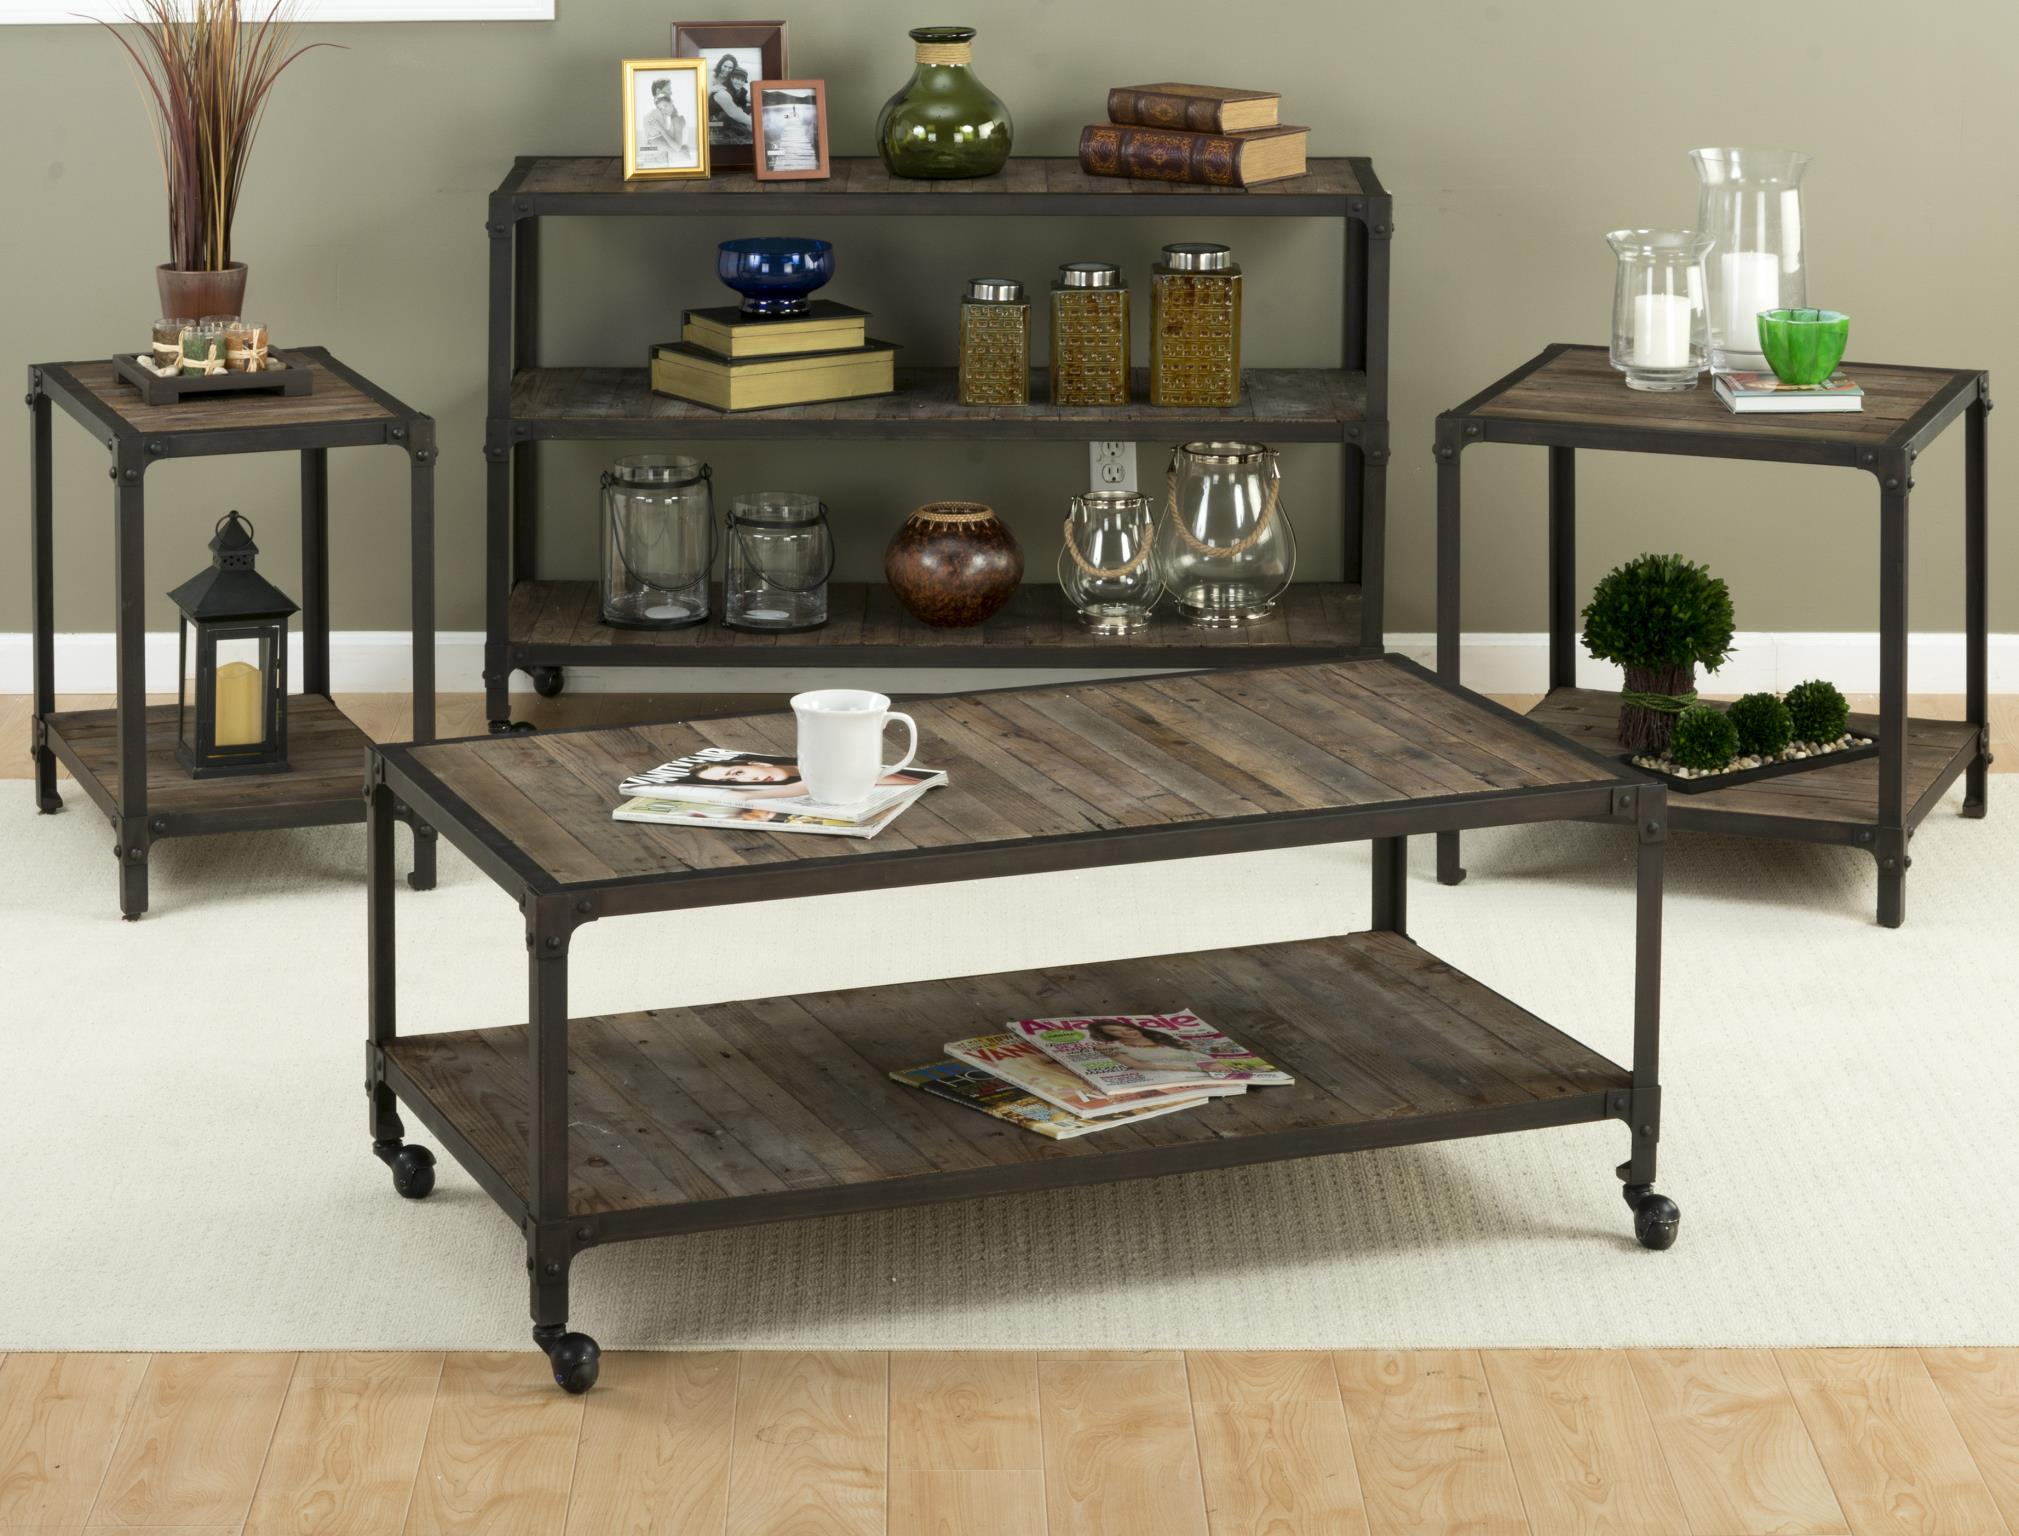 Franklin Forge Contemporary Metal Wood Coffee Table Set